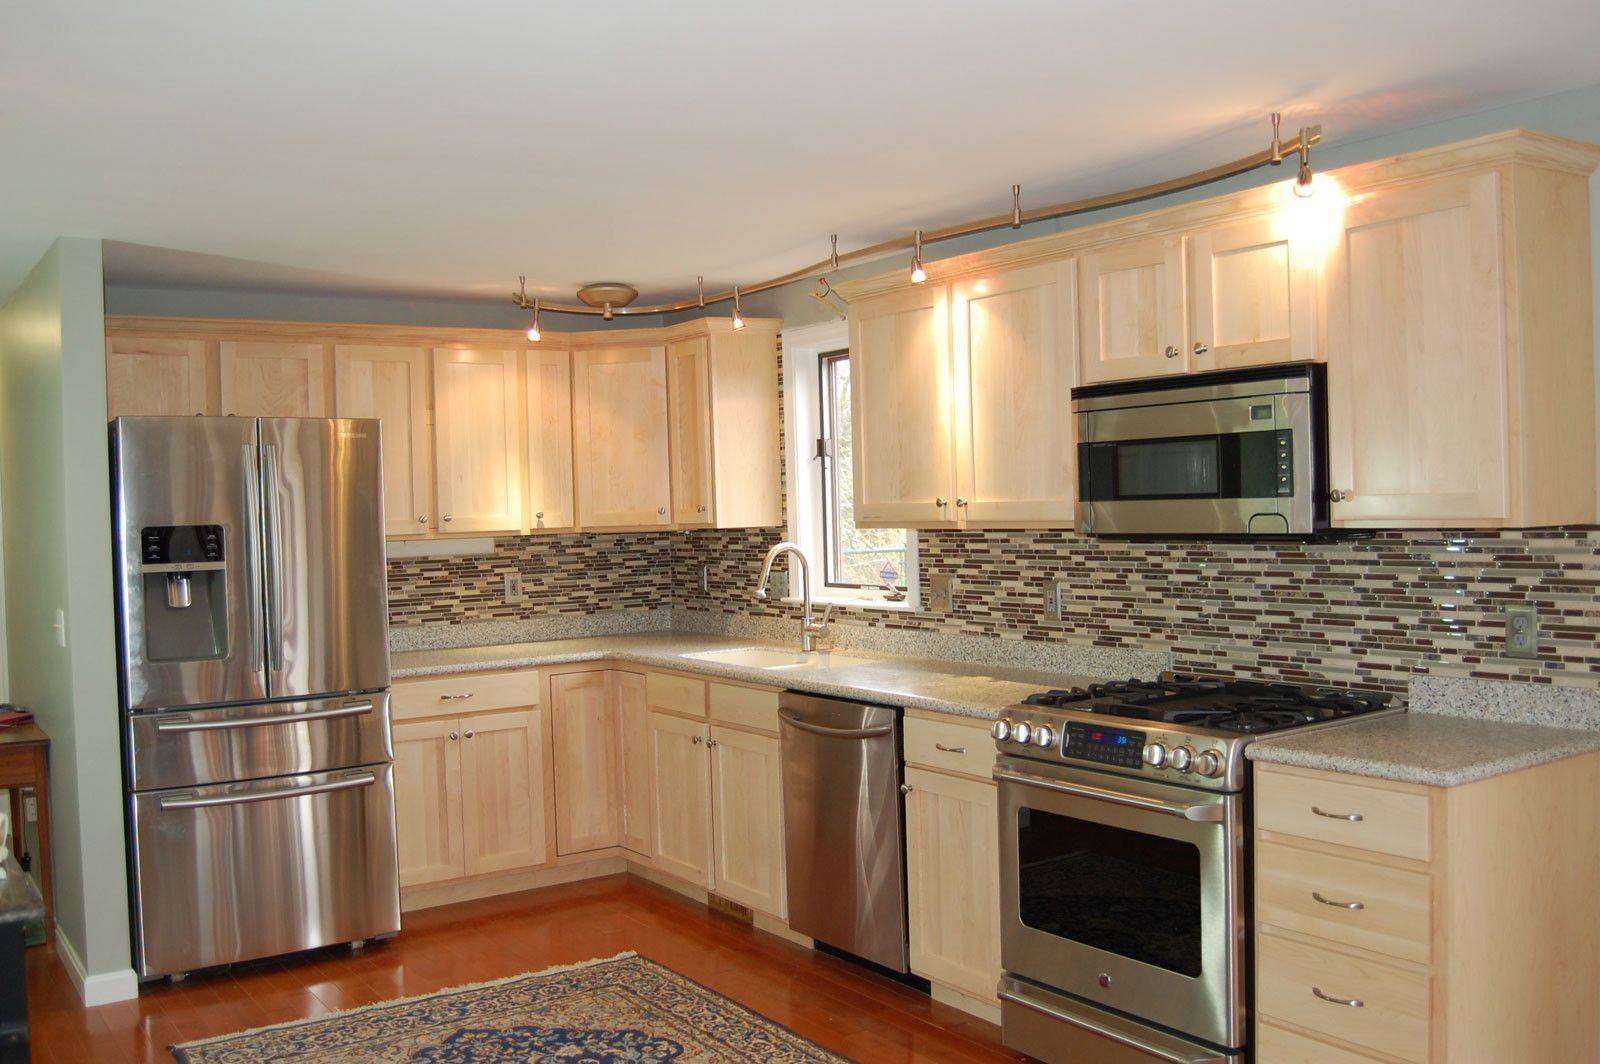 Attirant Great White Kitchen Cabinet Refacing Long Island And Kitchen Cabinets With  Marble Countertop Around Refrigerator Also Gas Stove Elegant Design For  Kitchen ...